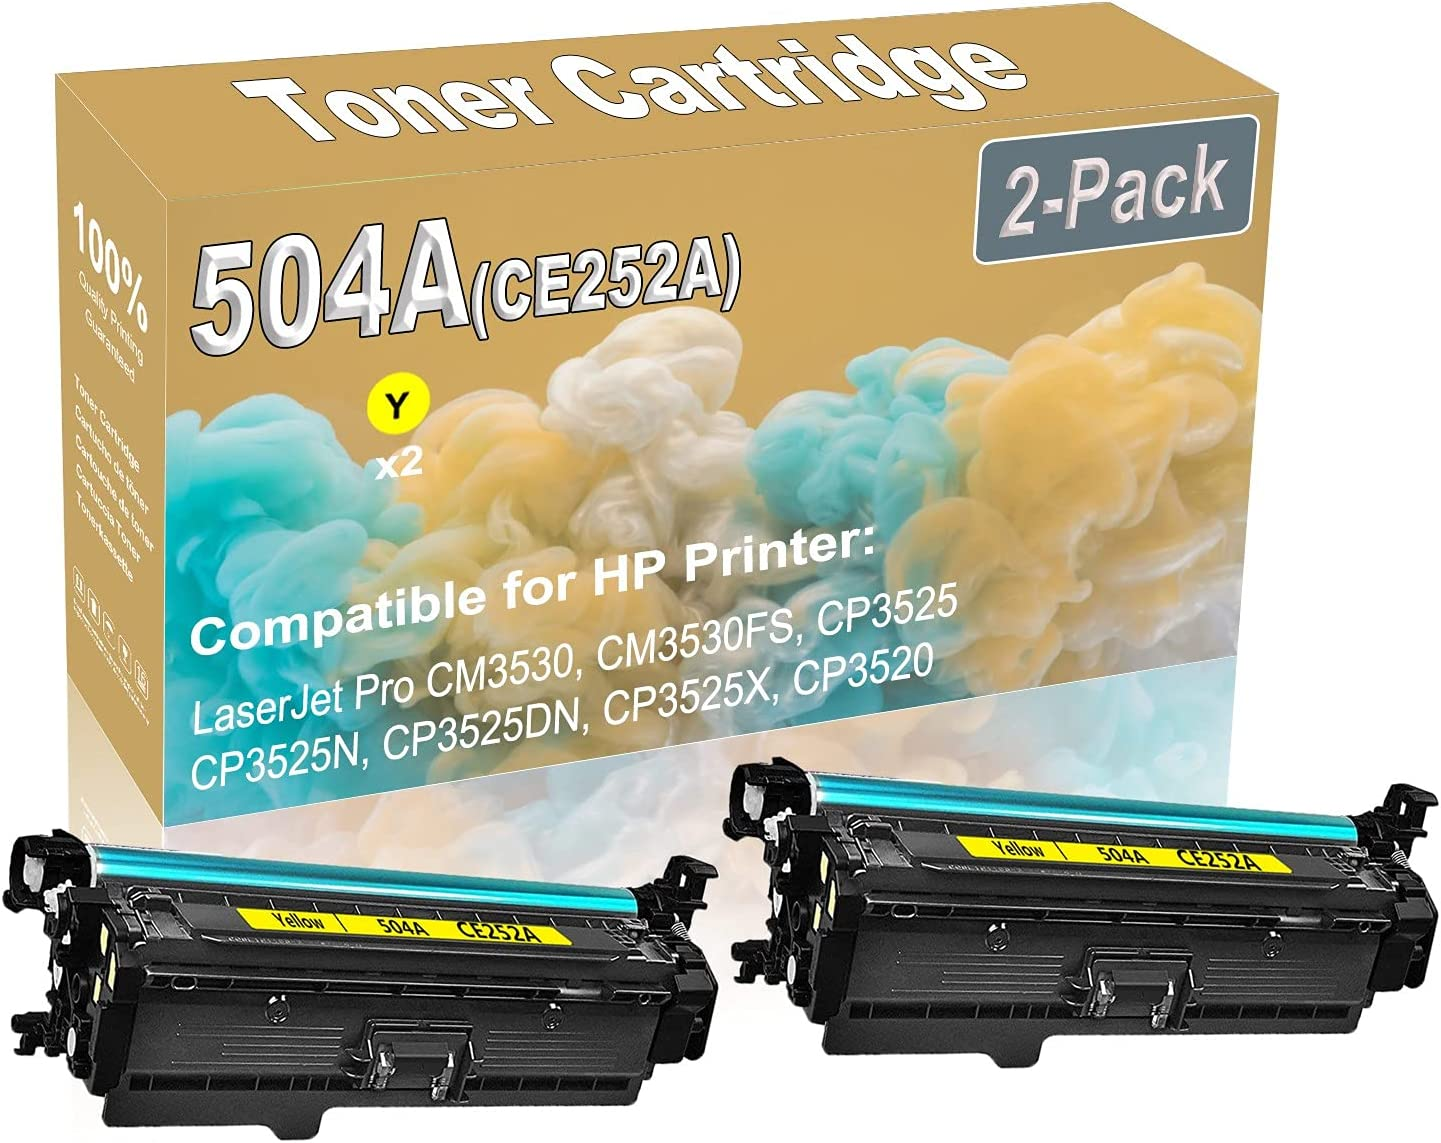 2-Pack (Yellow) Compatible High Yield 504A (CE252A) Printer Toner Cartridge use for HP CM3530 CM3530FS Printers